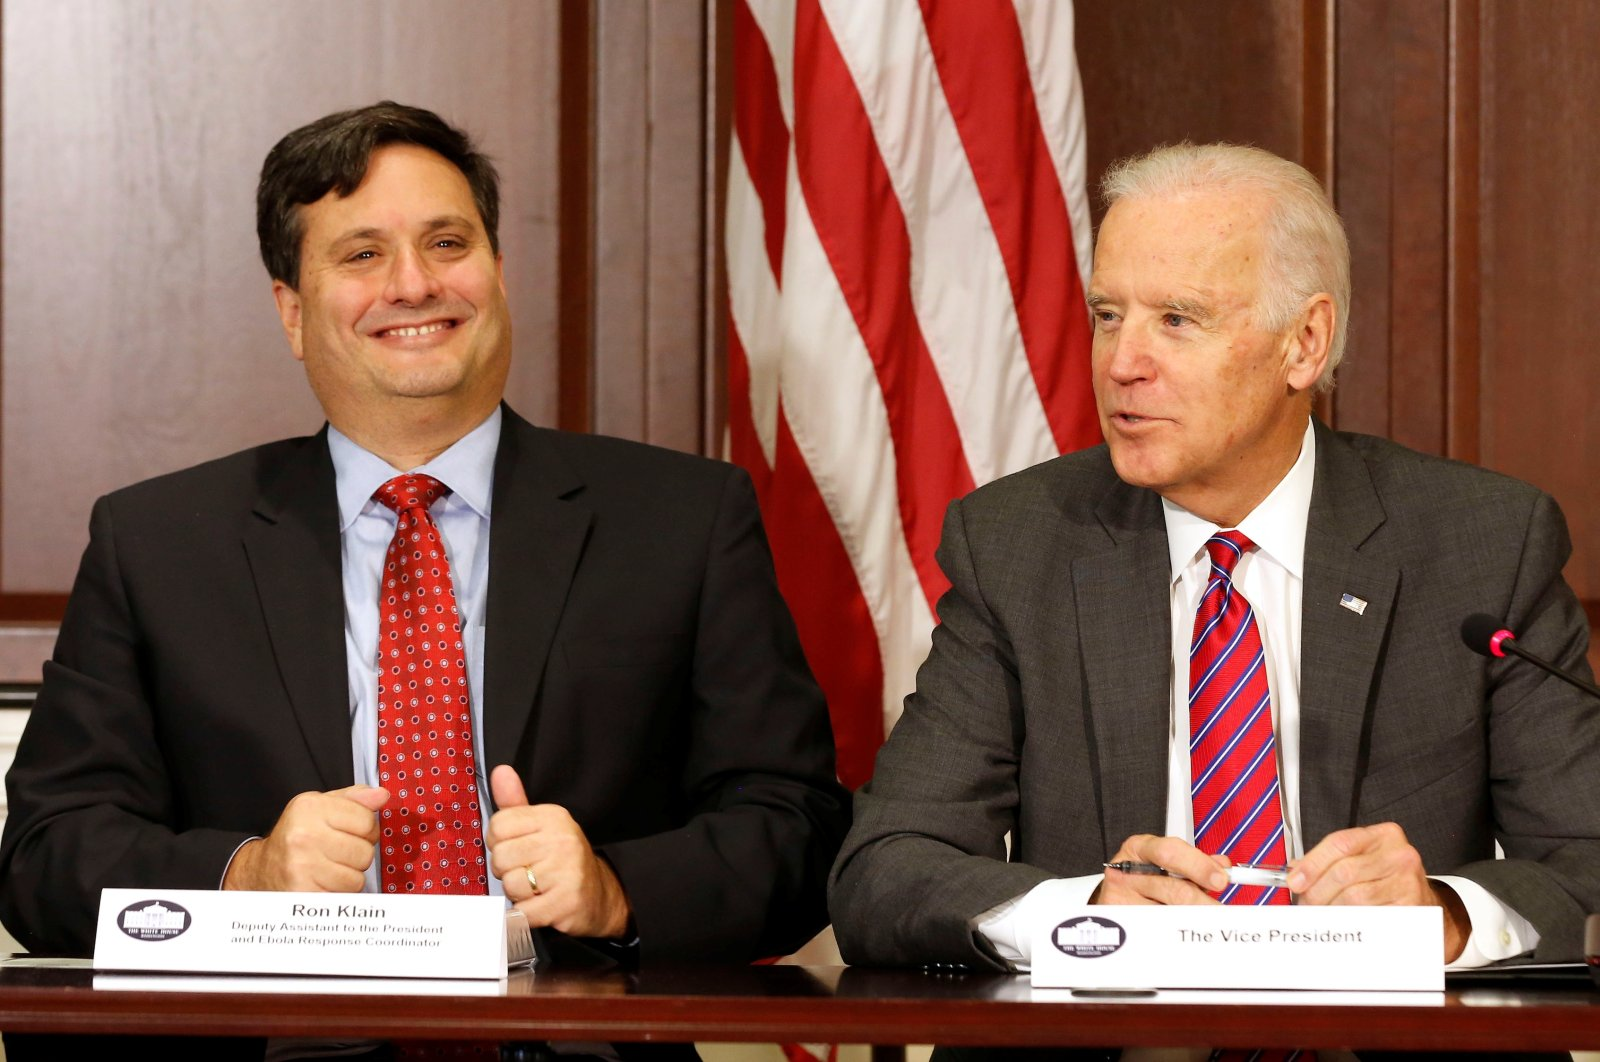 In this Nov. 13, 2014, file photo, then U.S. Vice President Joe Biden (R) is joined by Ebola Response Coordinator Ron Klain (L) in the Eisenhower Executive Office Building on the White House complex in Washington, U.S. (Reuters Photo)